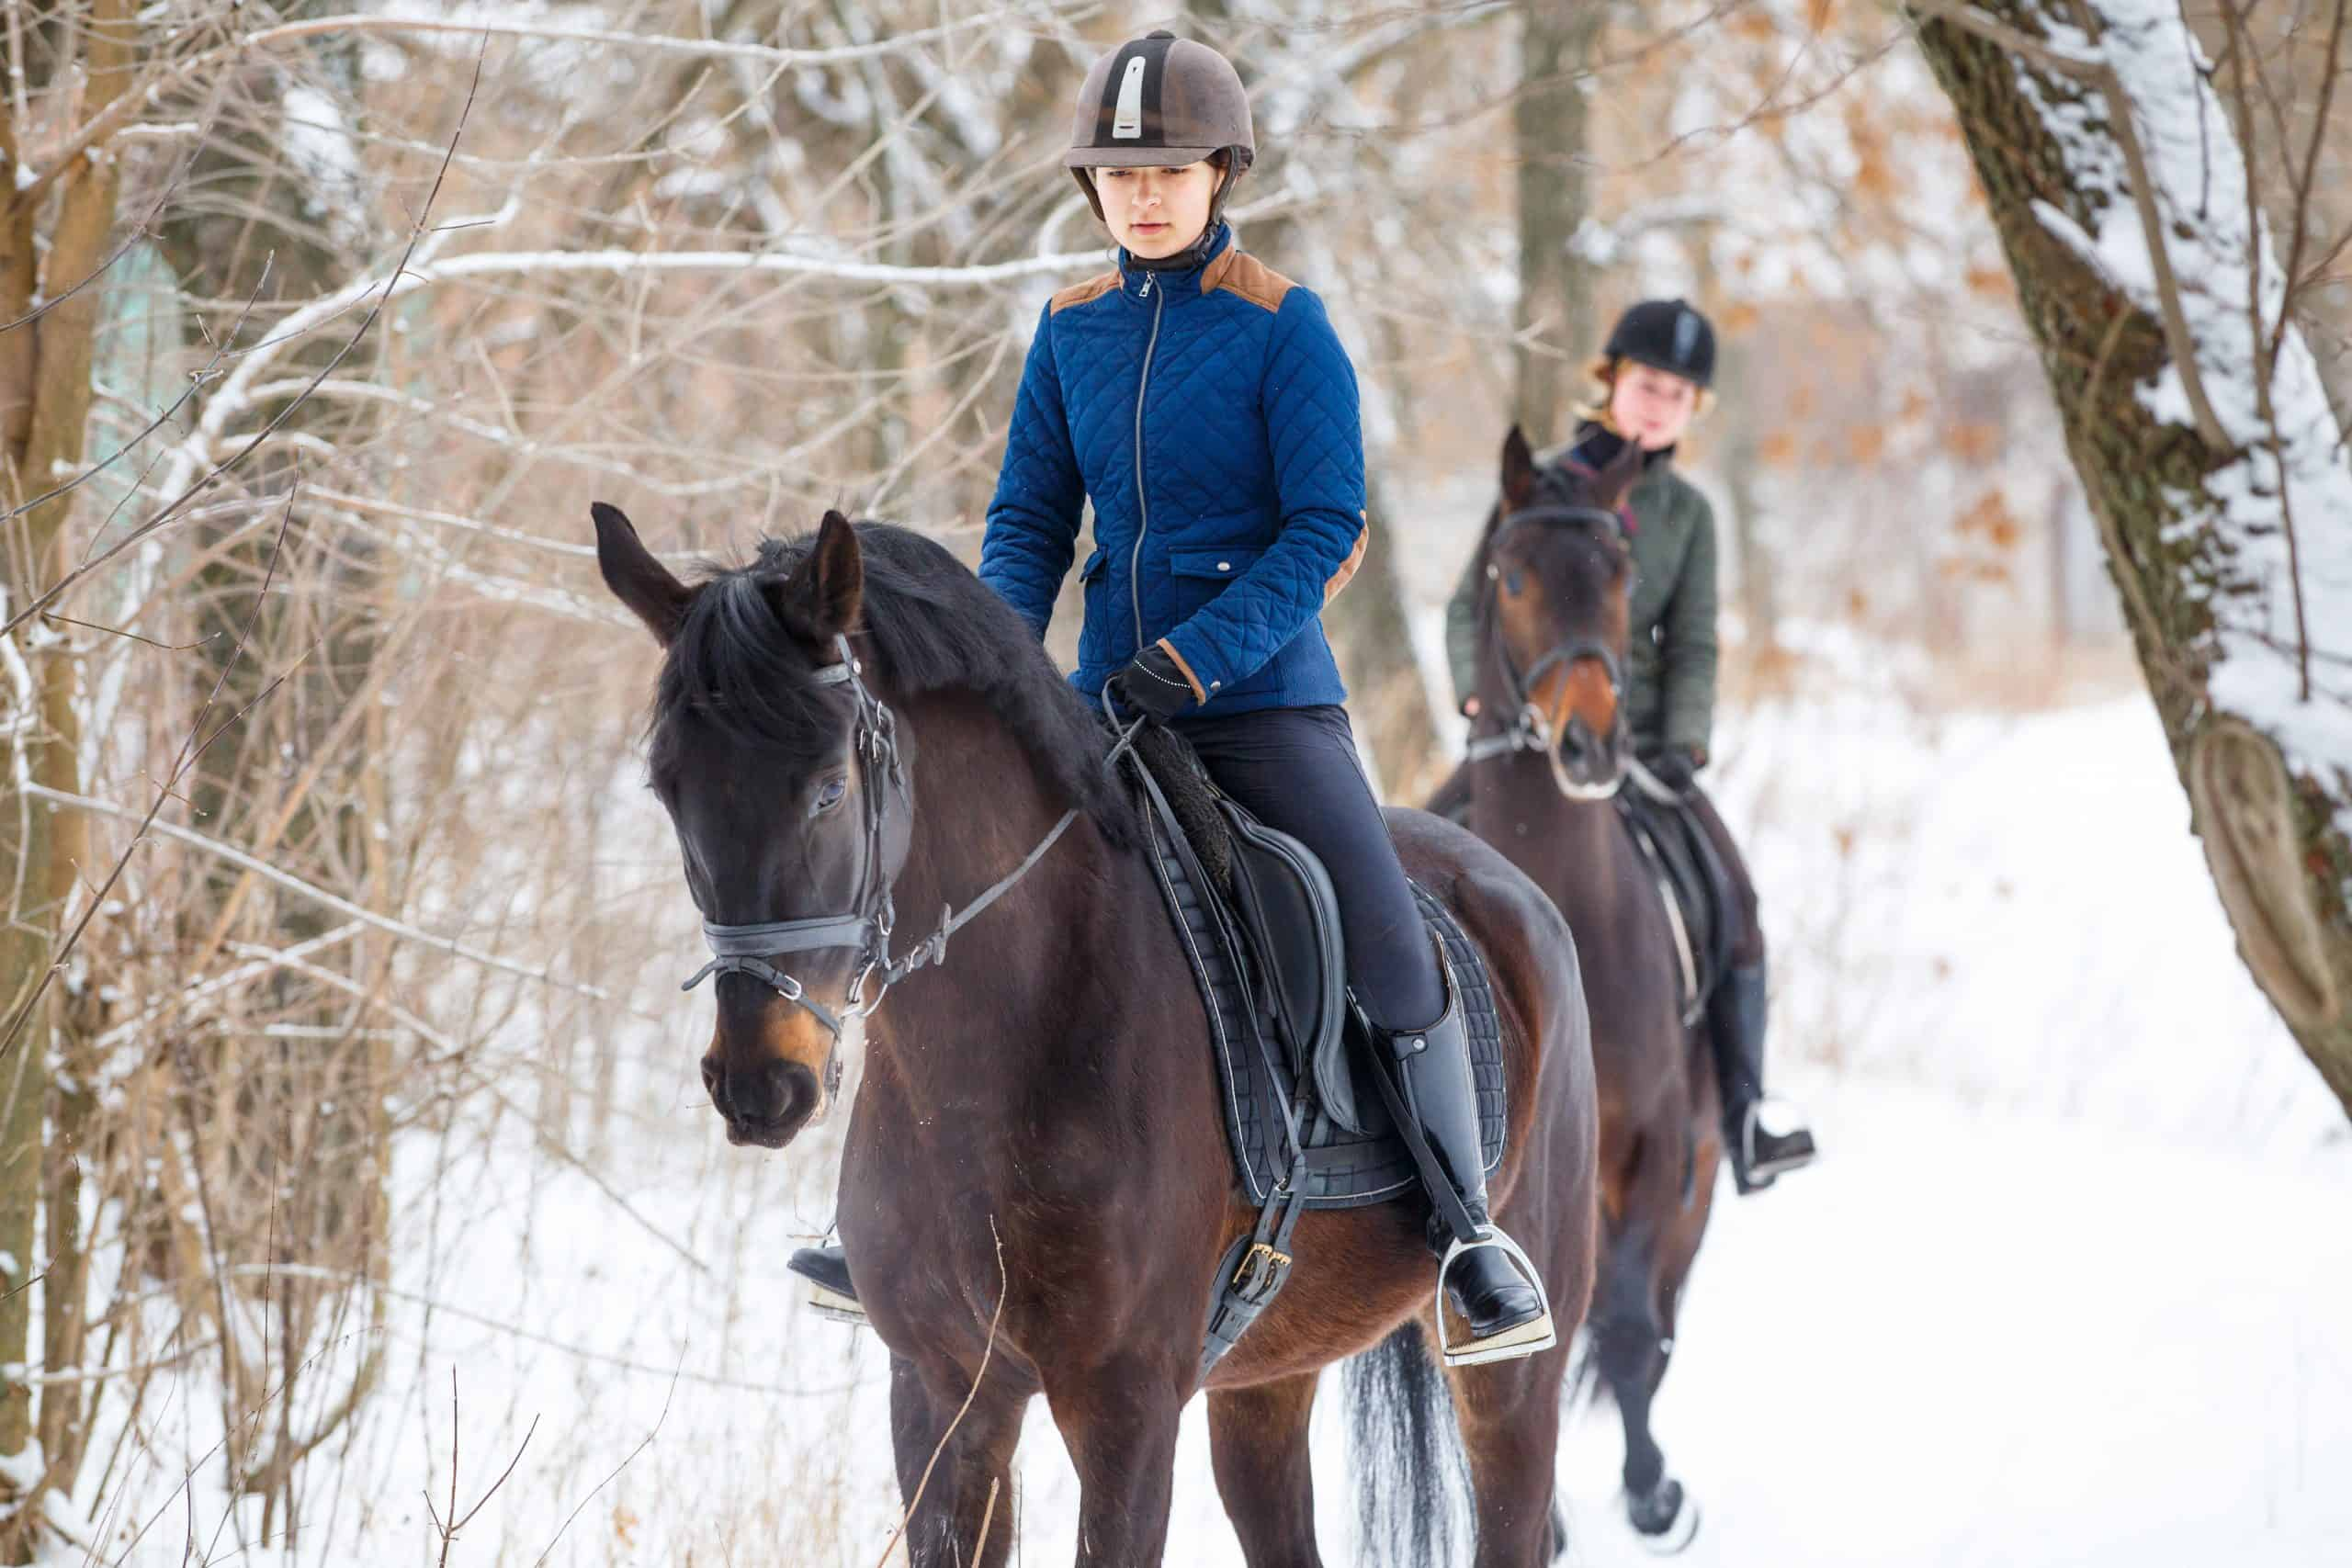 Two sportswomen riding hers bay horses in winter park. Equestrian winter activity background